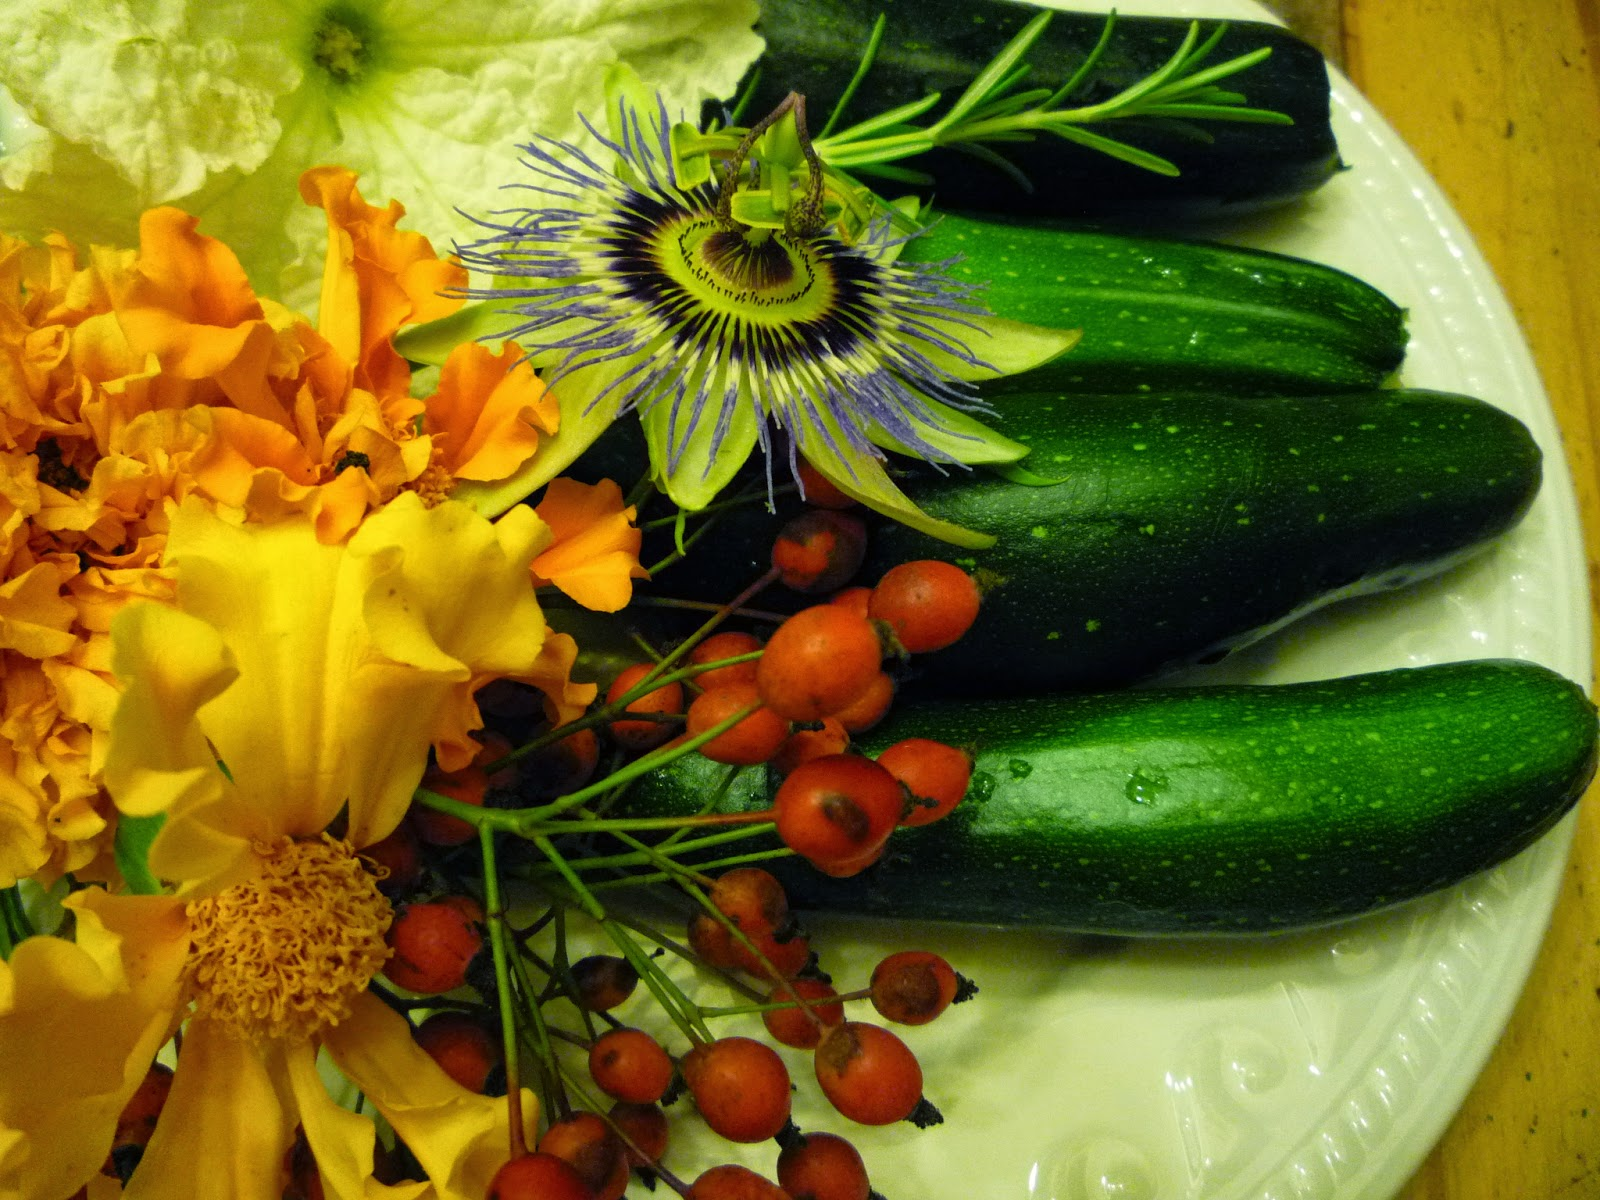 Organic home-grown fruits and flowers of Autumn